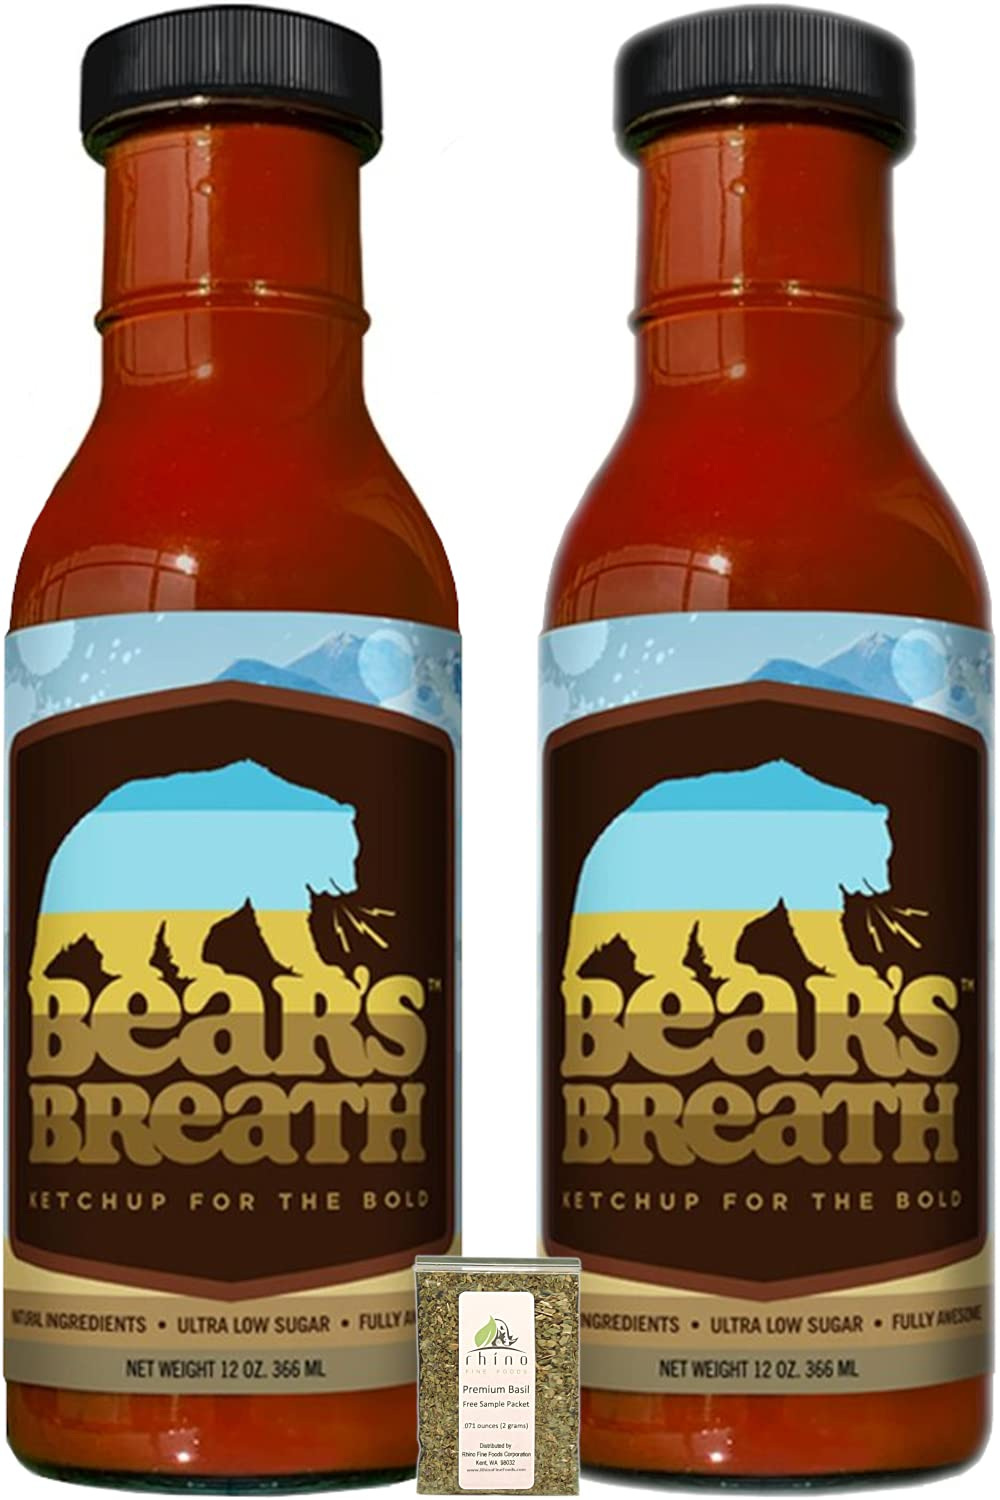 Bear's Breath Ketchup For NEW before selling The Bold Spicy Bearly Savory